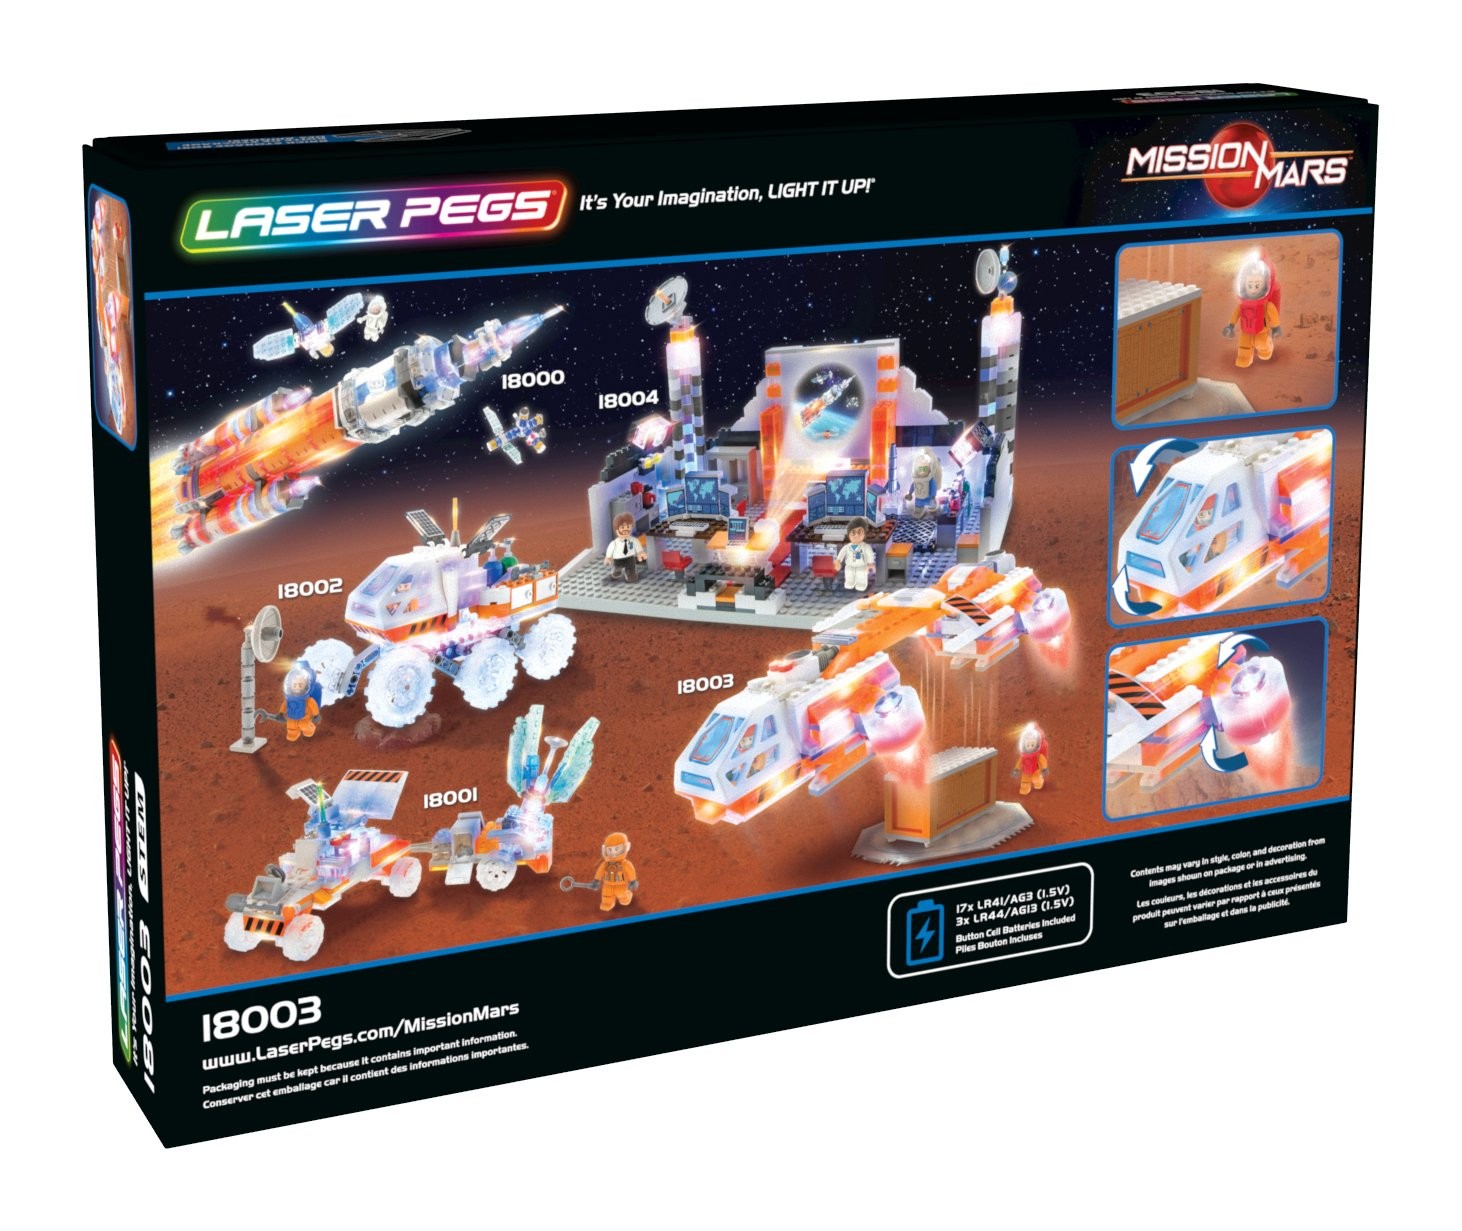 Laser Pegs Mars Shuttle Building Toy 280 Pieces 18003